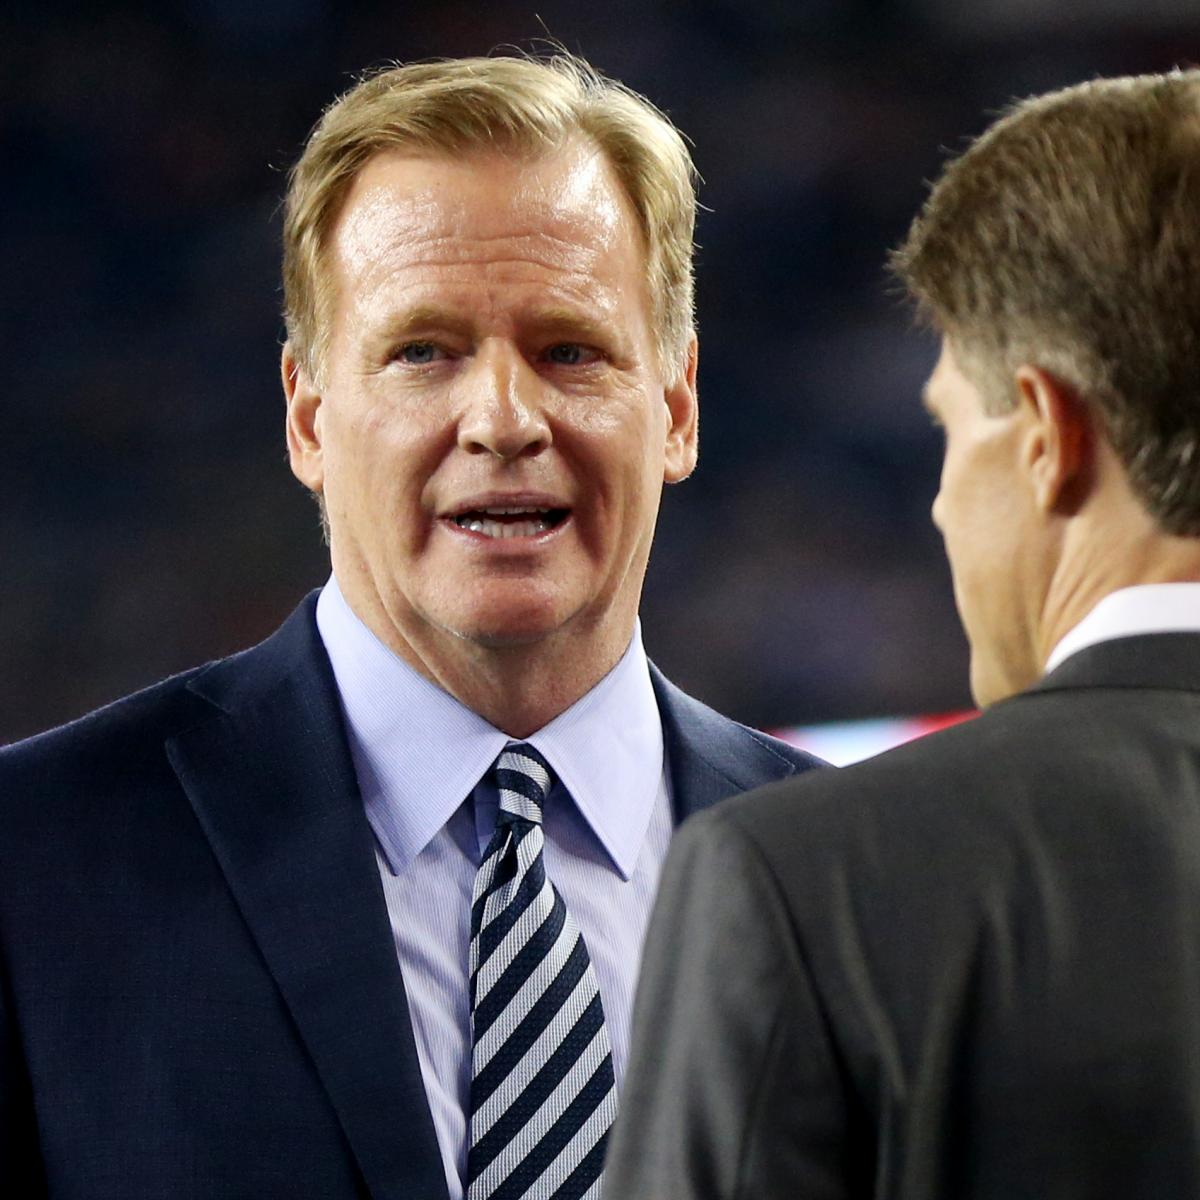 Report: Roger Goodell's Contract Extension Delayed Because of 'Anthem Issue'